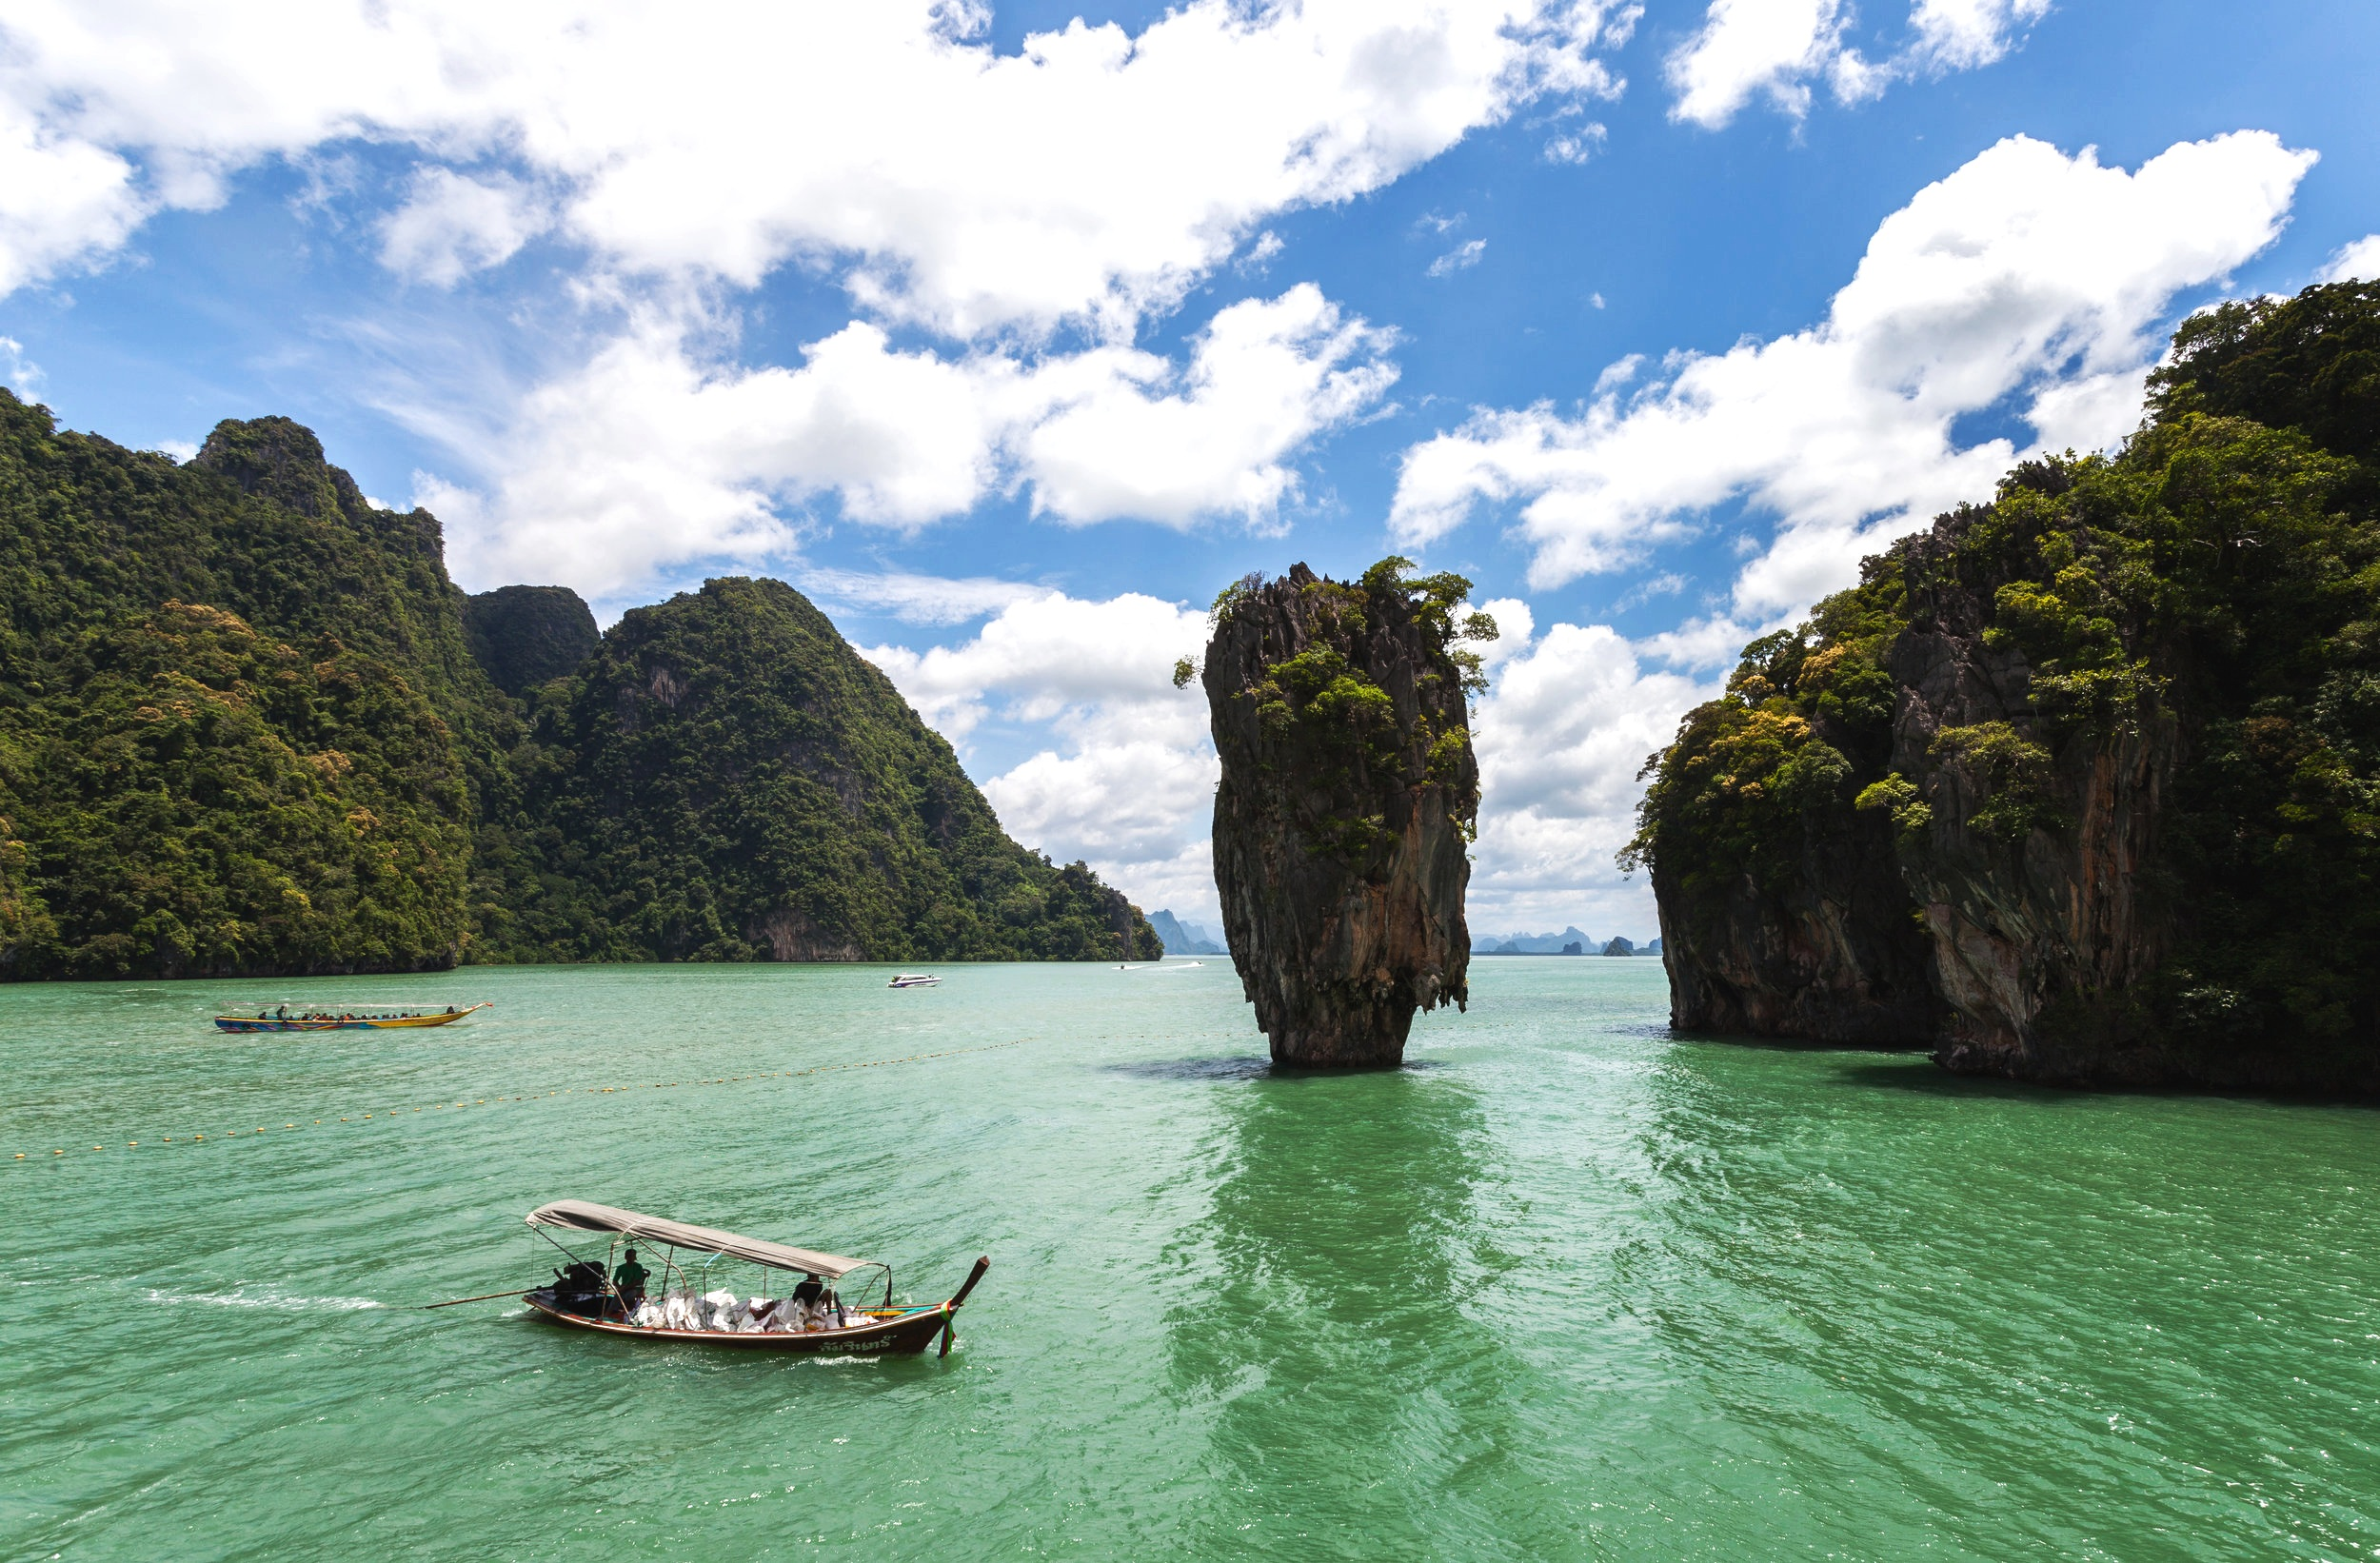 Thailand's Phang Nga Bay, the site of Chewbacca's home planet, Kashyyyk (Photo:  Wikimedia Commons )